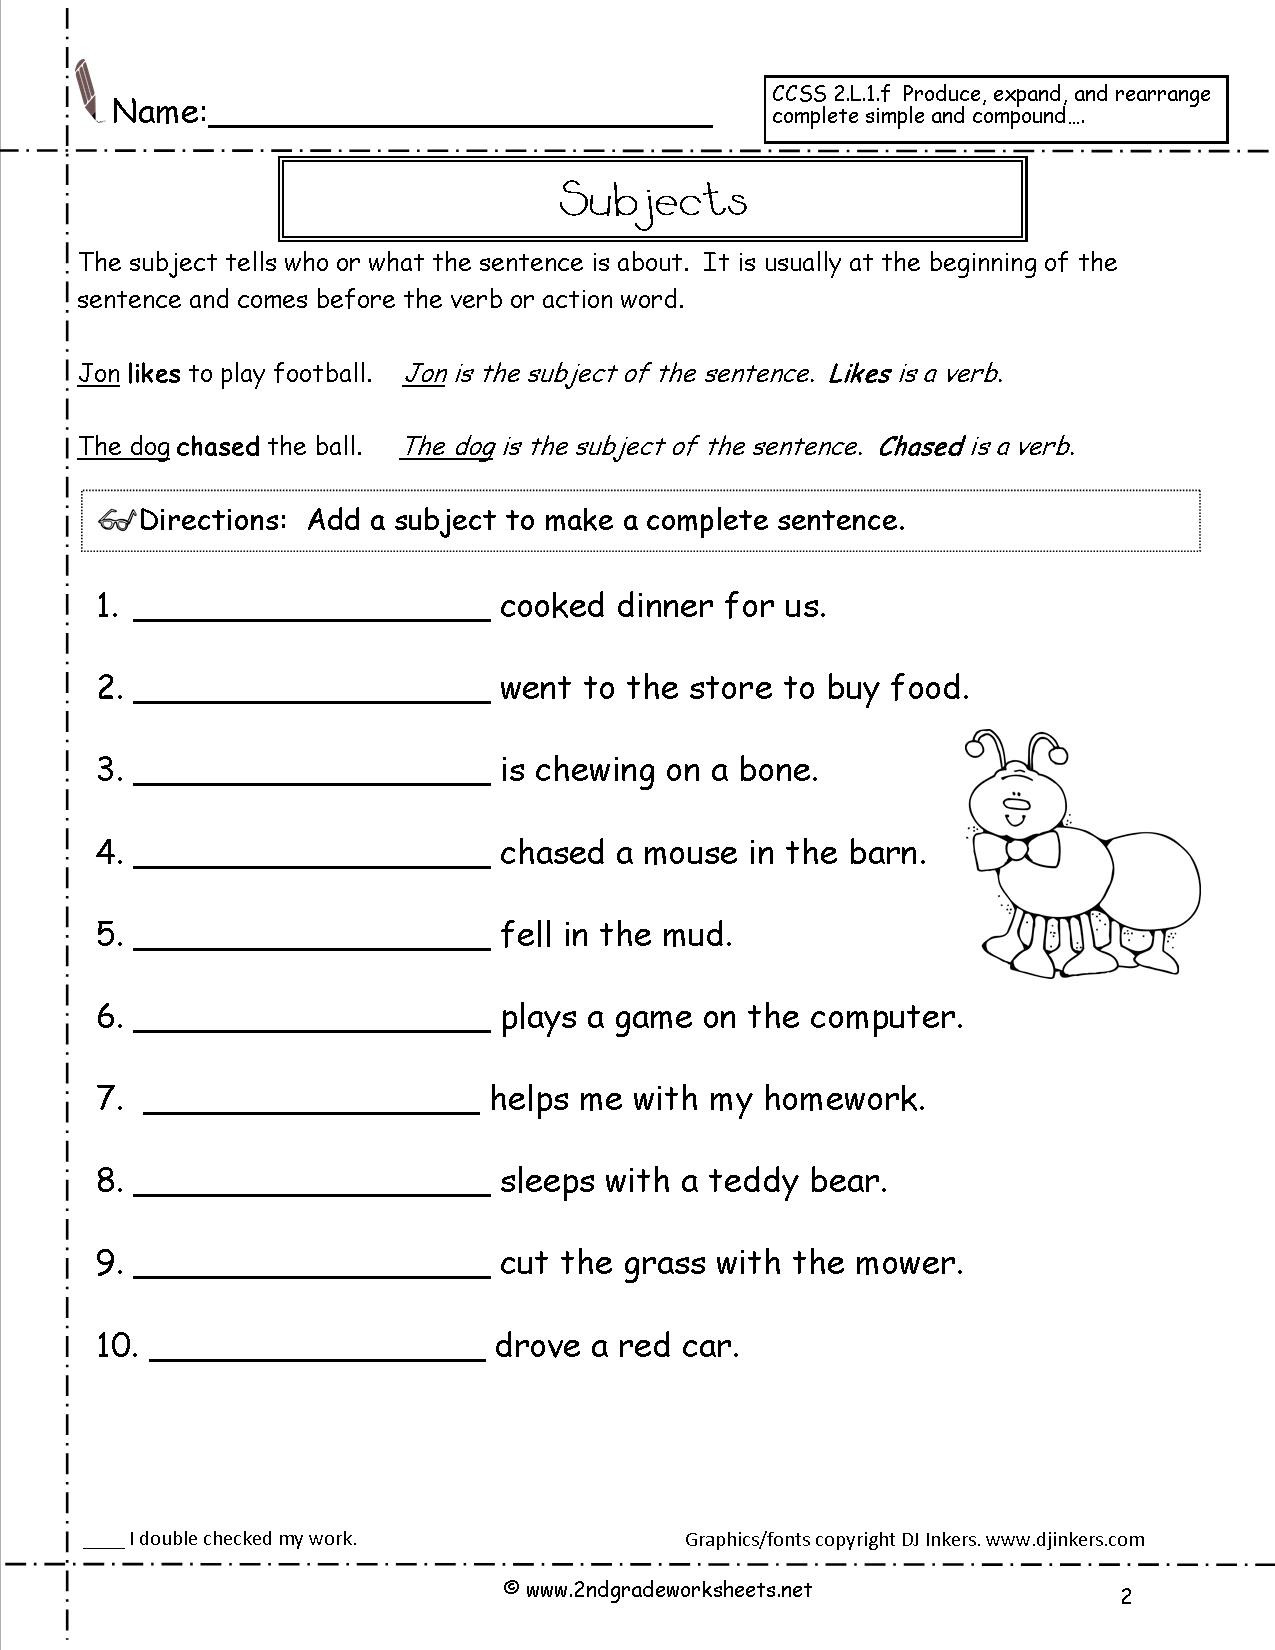 Editing Worksheet 3rd Grade Basic Math Words Printable Cursive Worksheets 3rd Grade